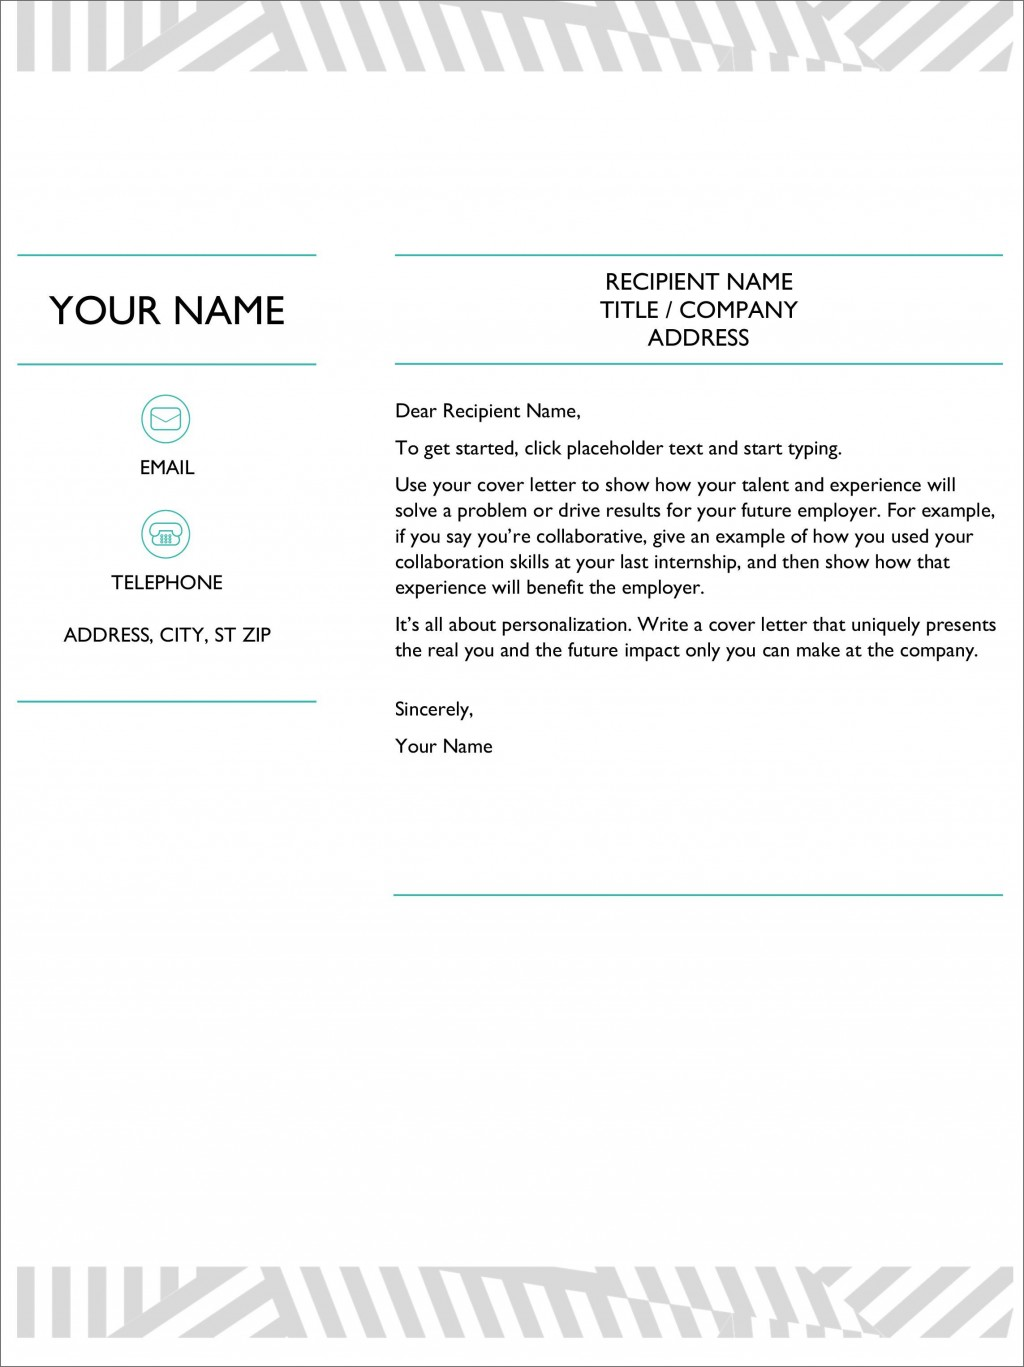 007 Excellent Window Resume Cover Letter Template Photo  TemplatesLarge